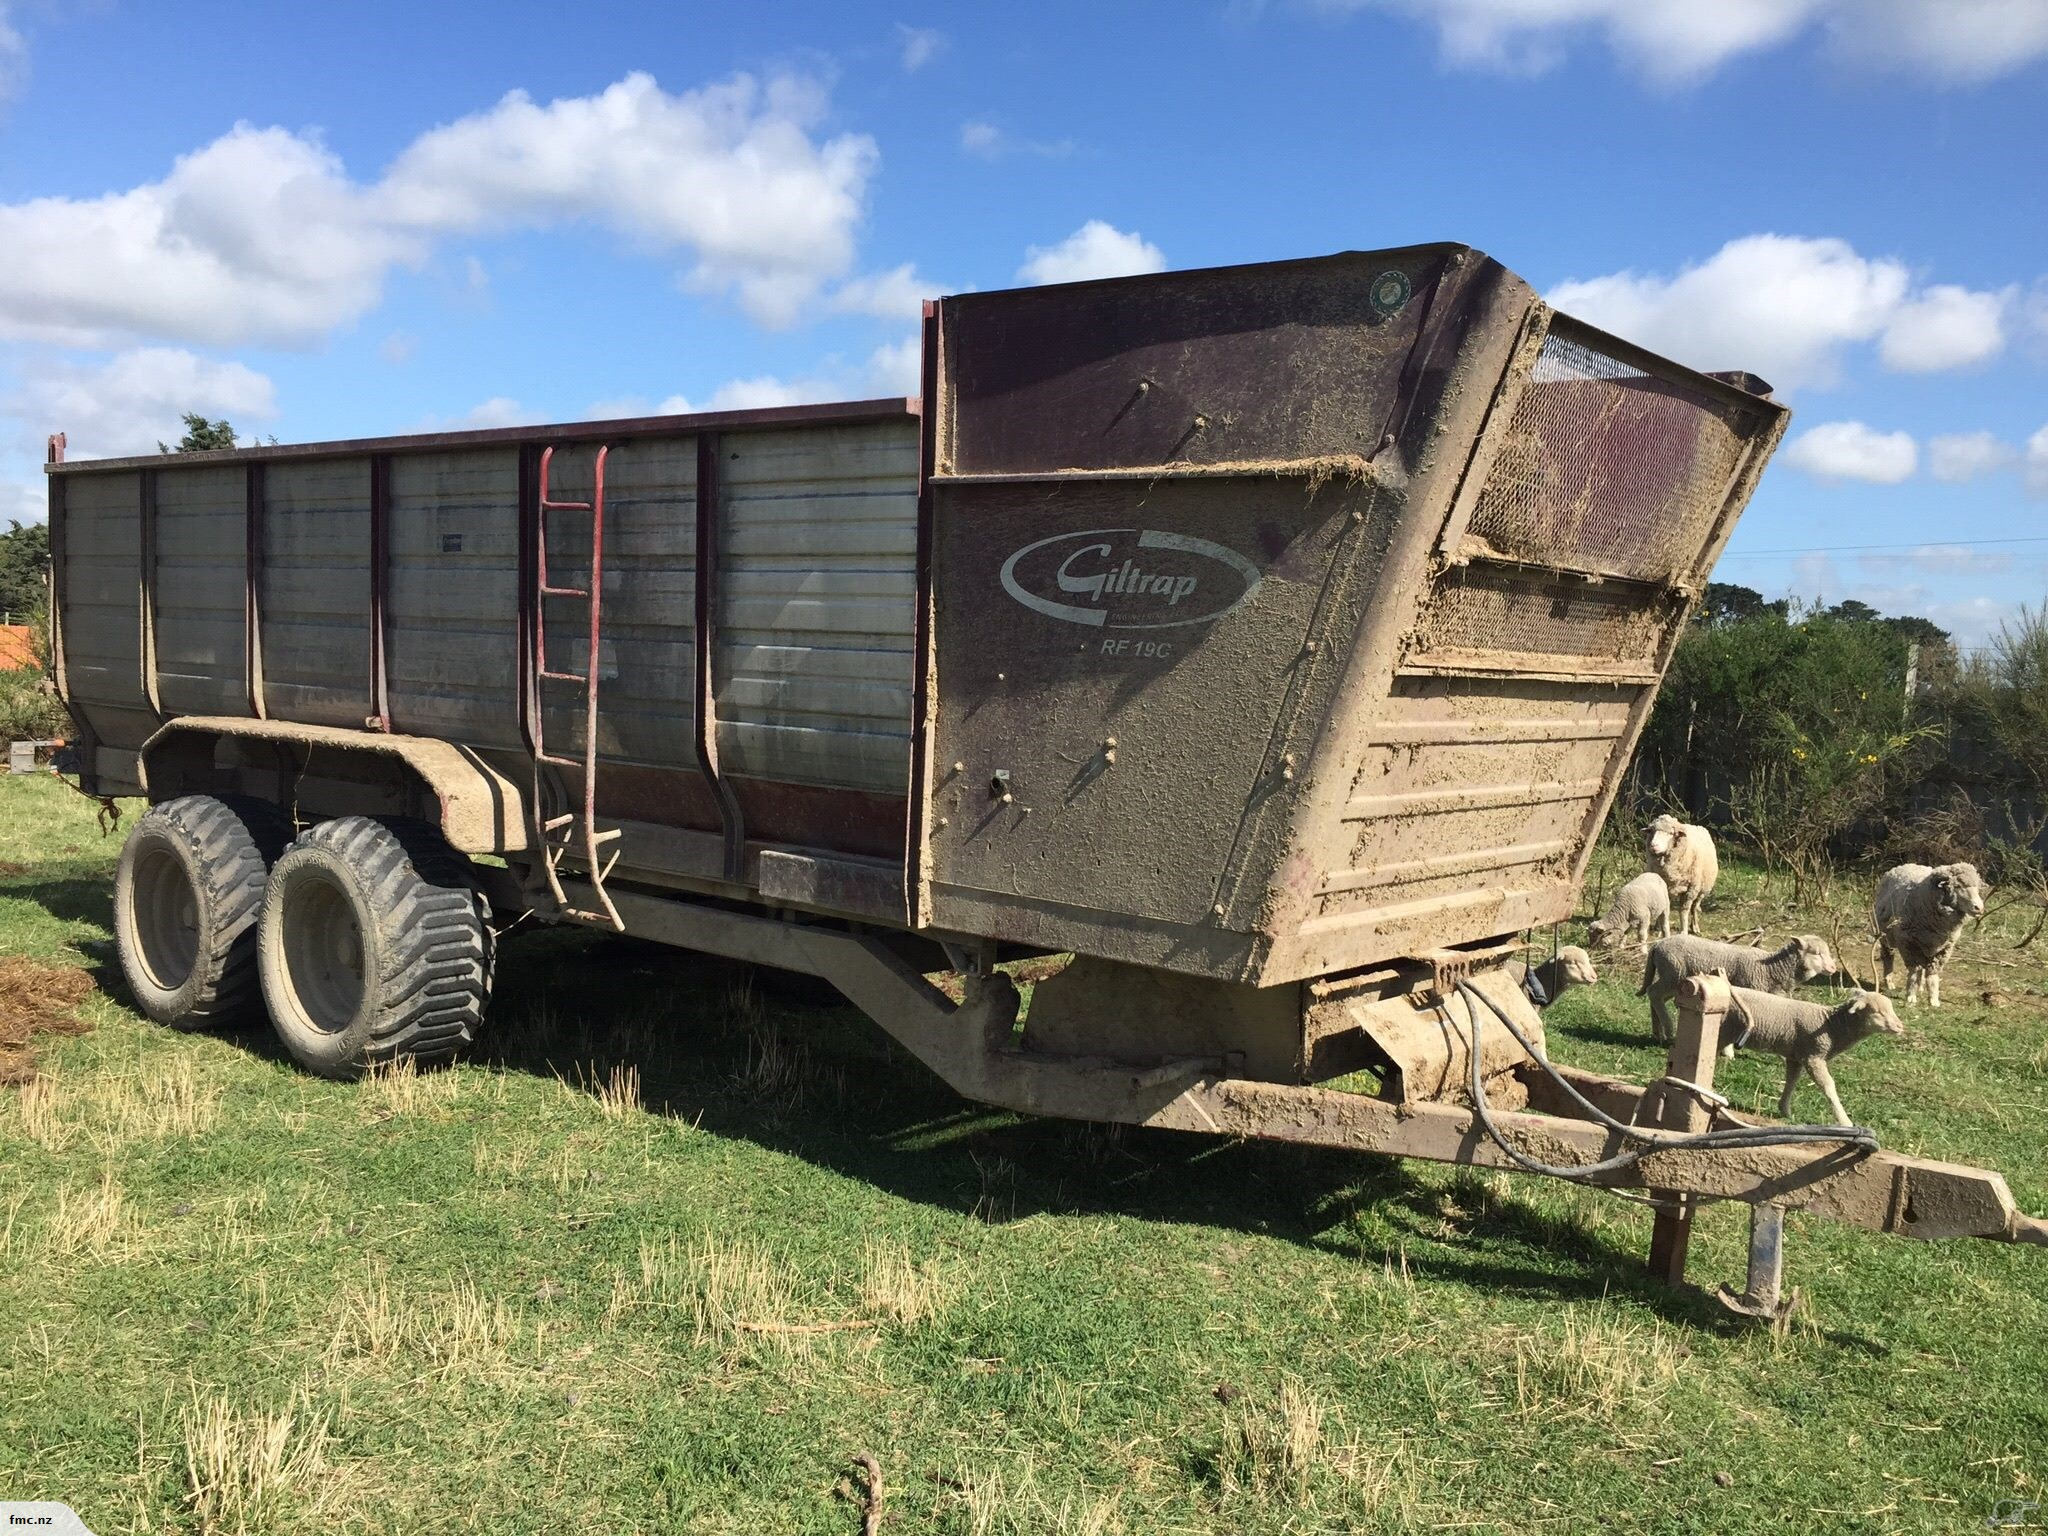 hfs feeder wagon information more modelpicture attachment hay diller see